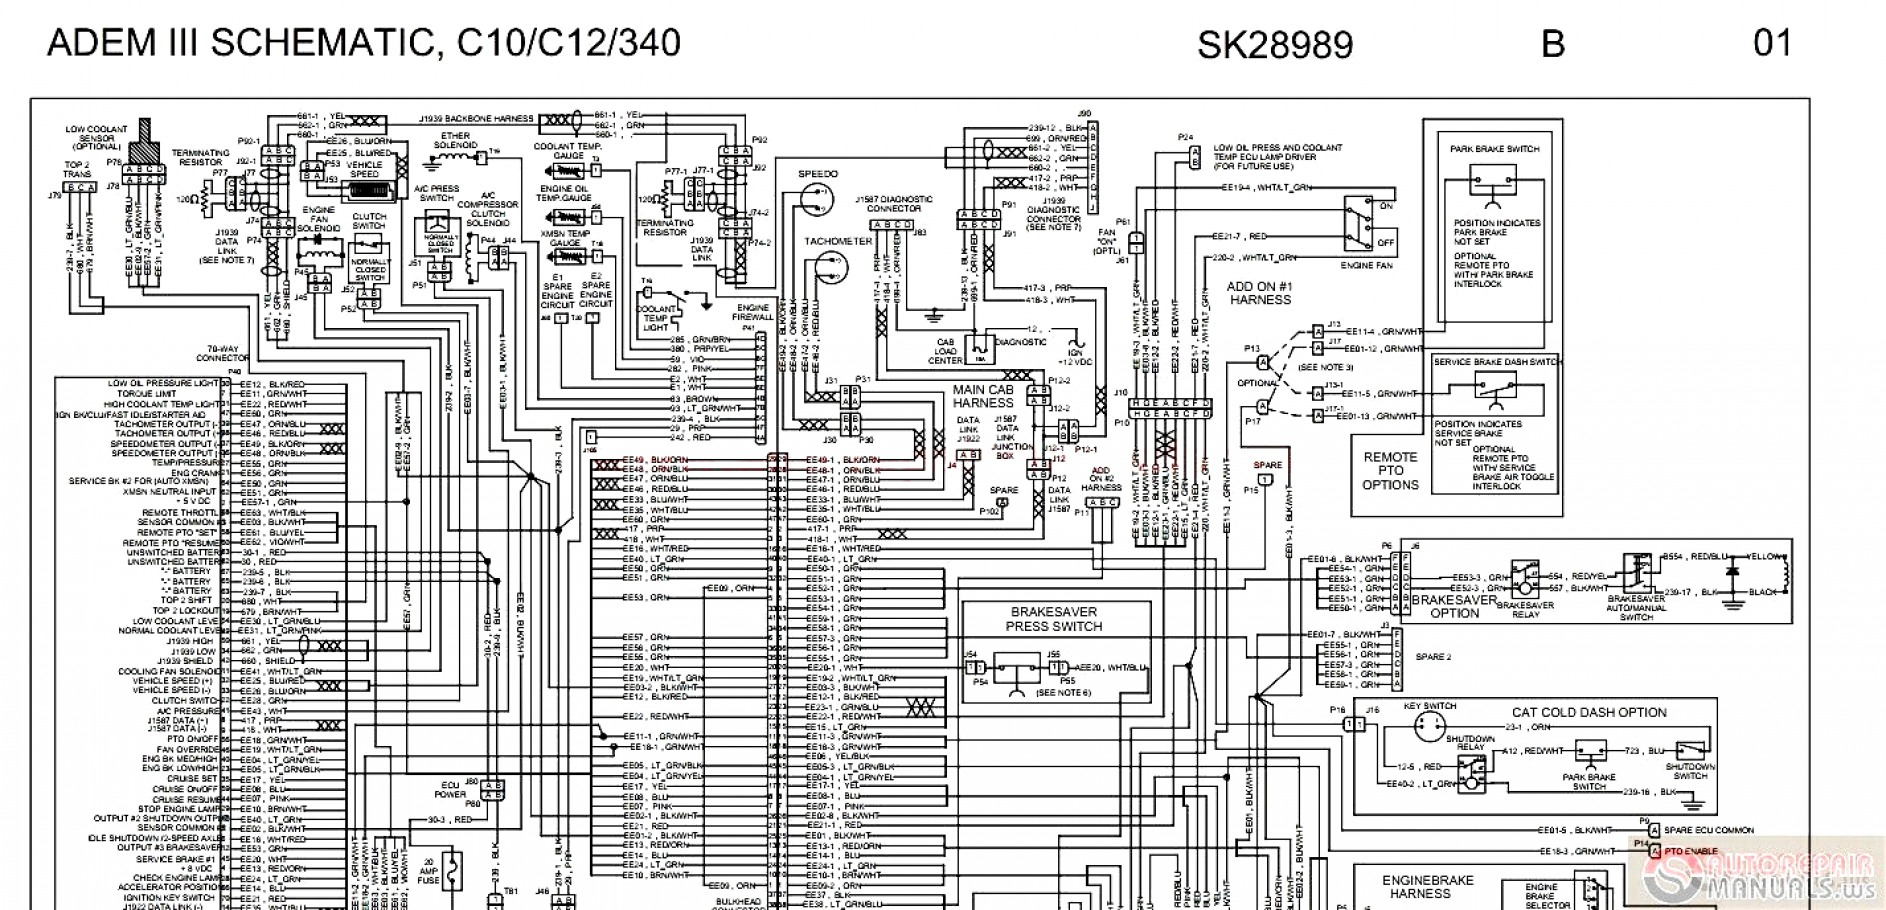 Wonderful Of Peterbilt Wiring Diagram 2004 379 Diagrams Schematic - Peterbilt 379 Wiring Diagram